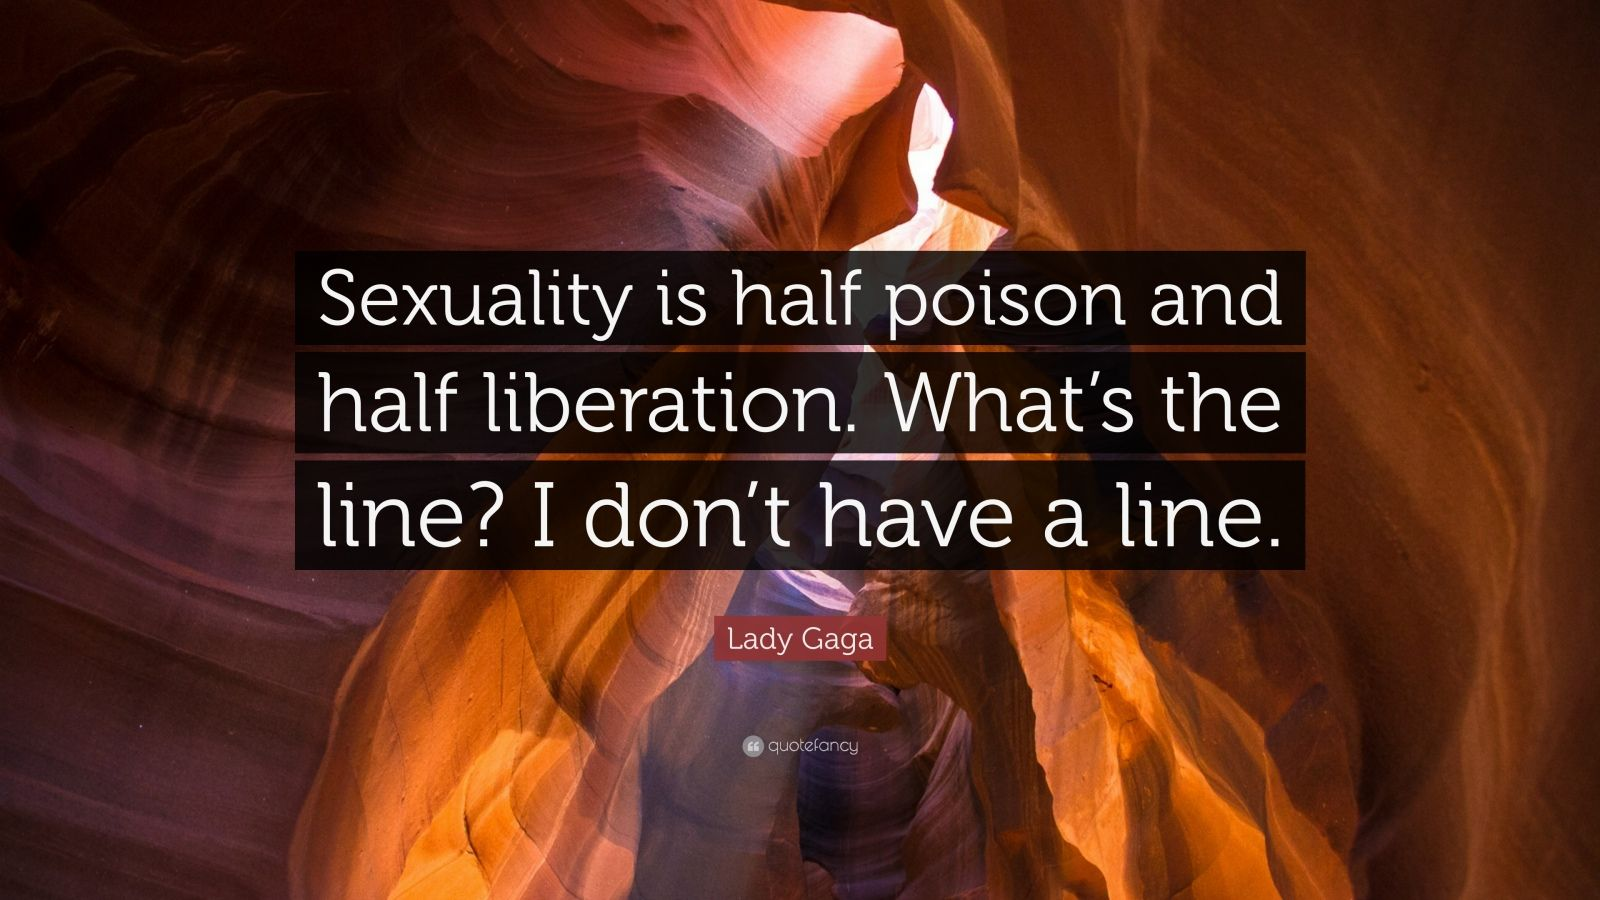 """Lady Gaga Quote: """"Sexuality is half poison and half liberation. What's the line? I don't have a line."""""""